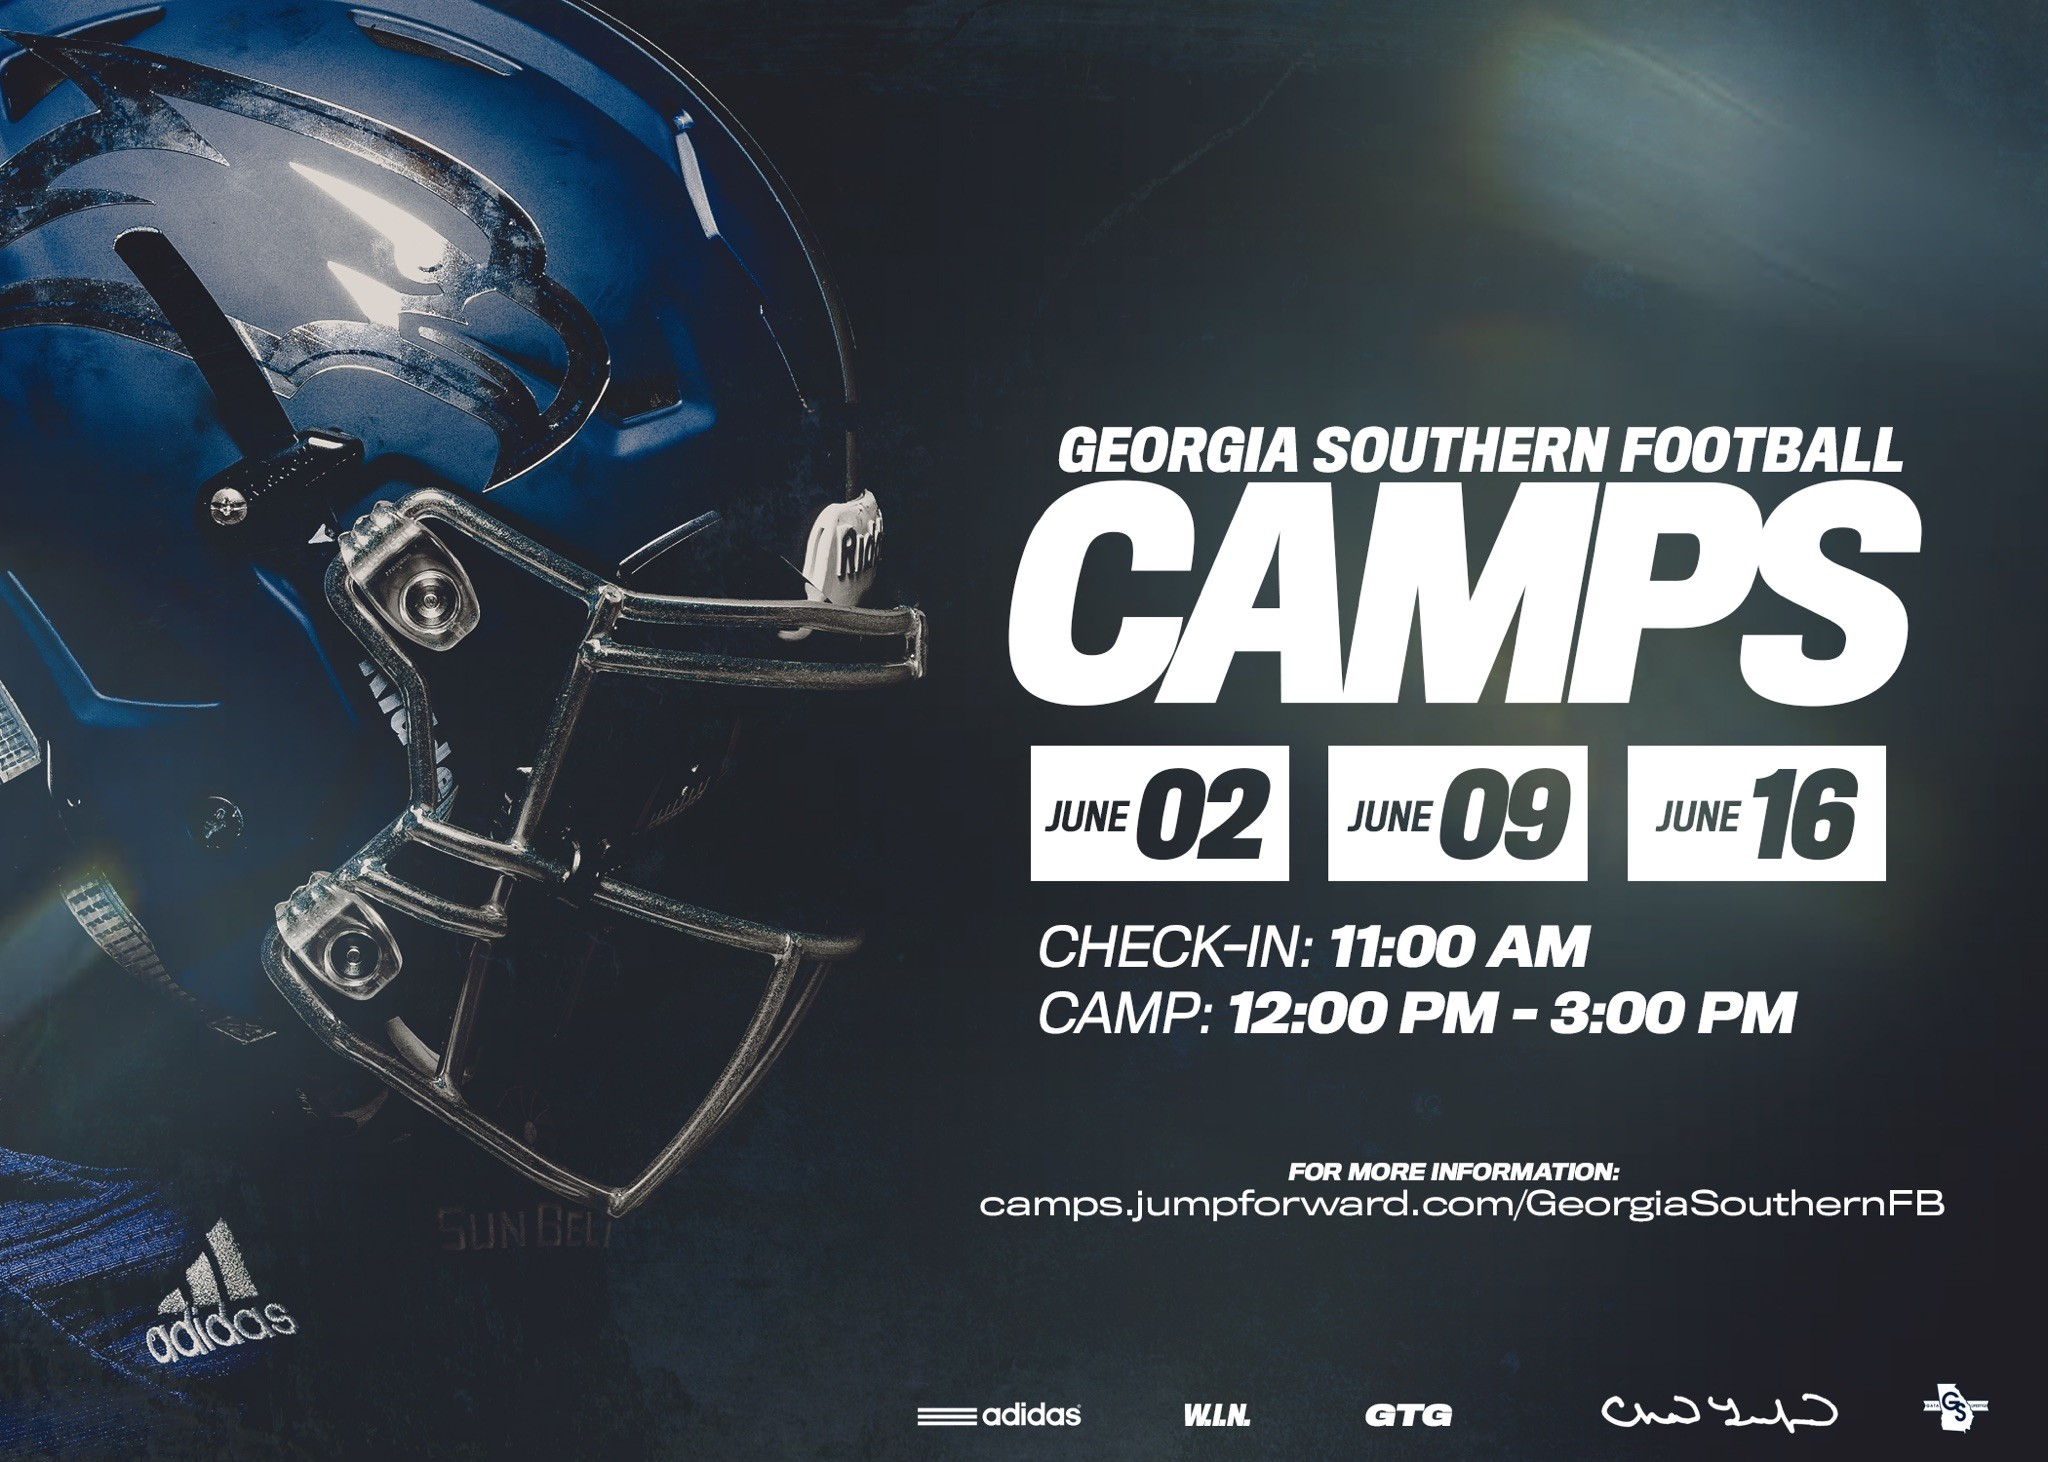 Georgia Southern Football Camps 2019